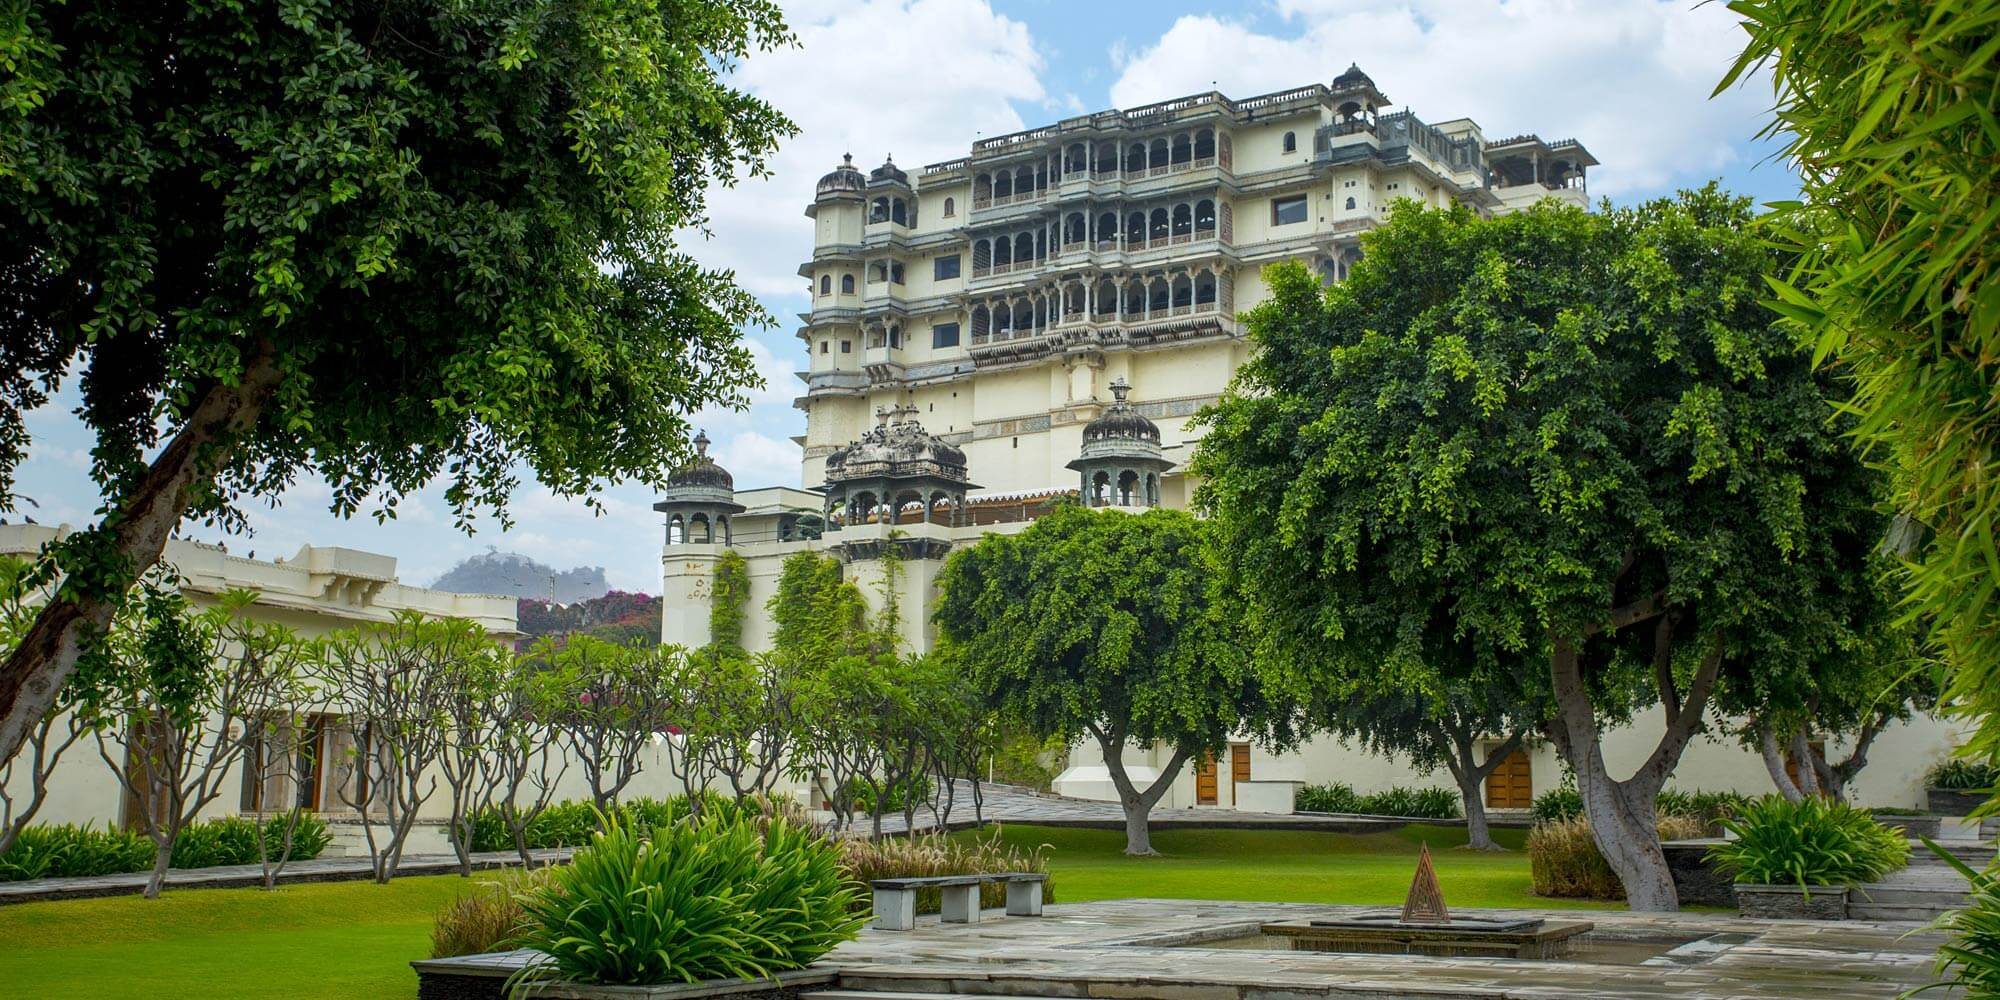 the i-escape blog / Your favourite hotels of 2018 / Raas Devigarh